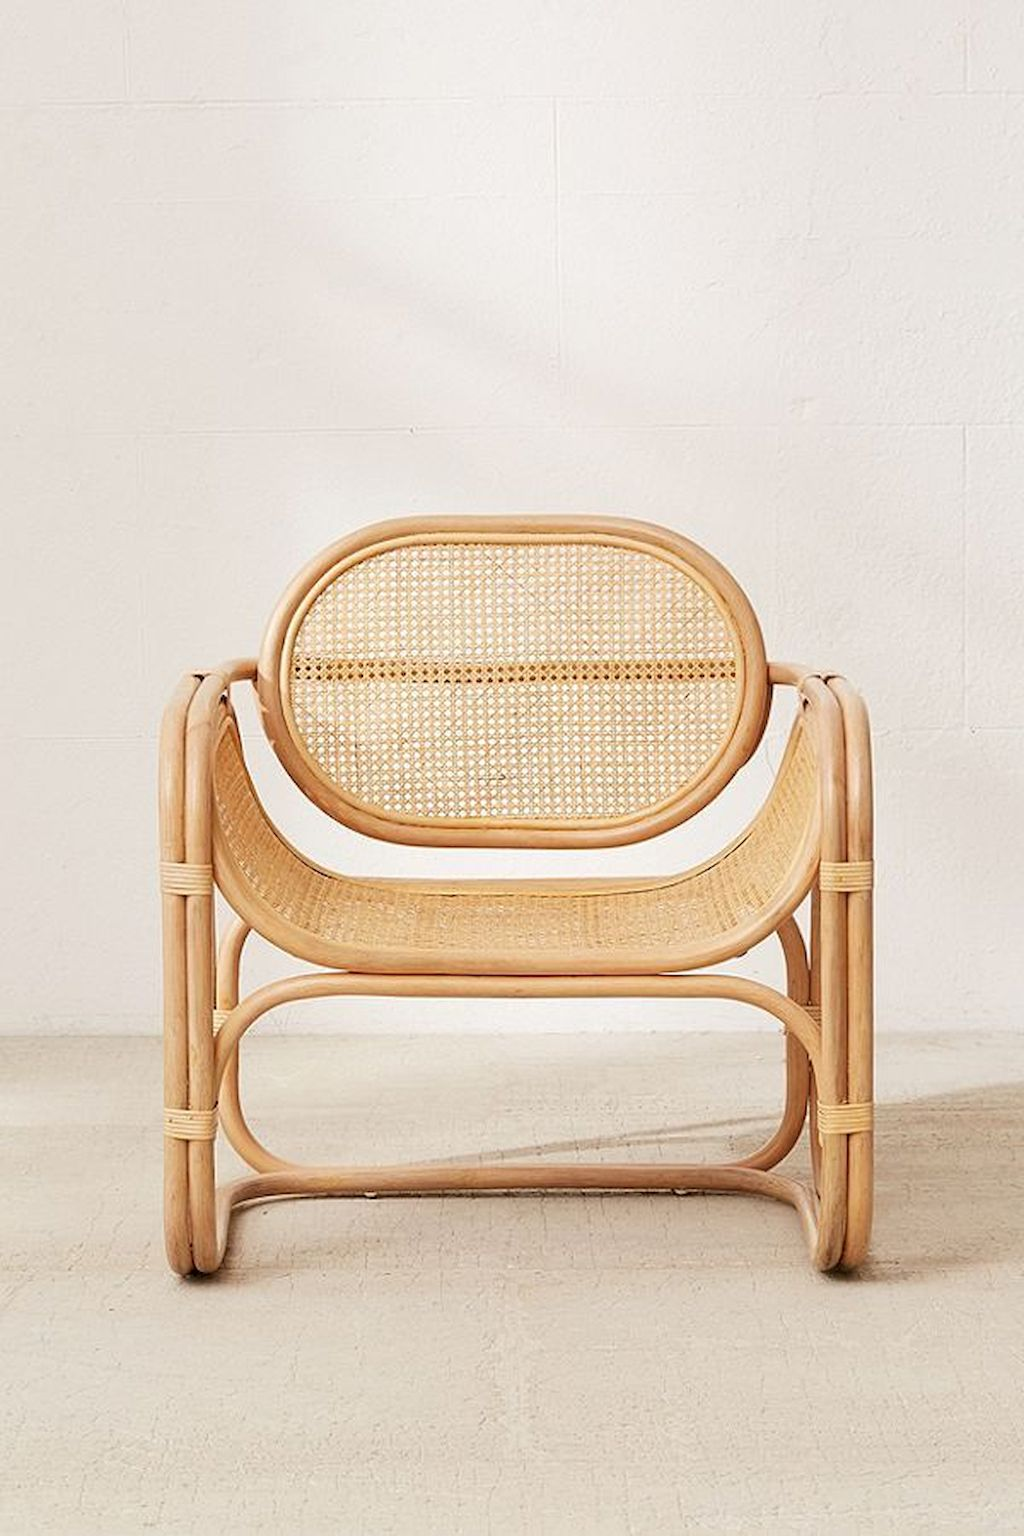 Rattan Furniture035